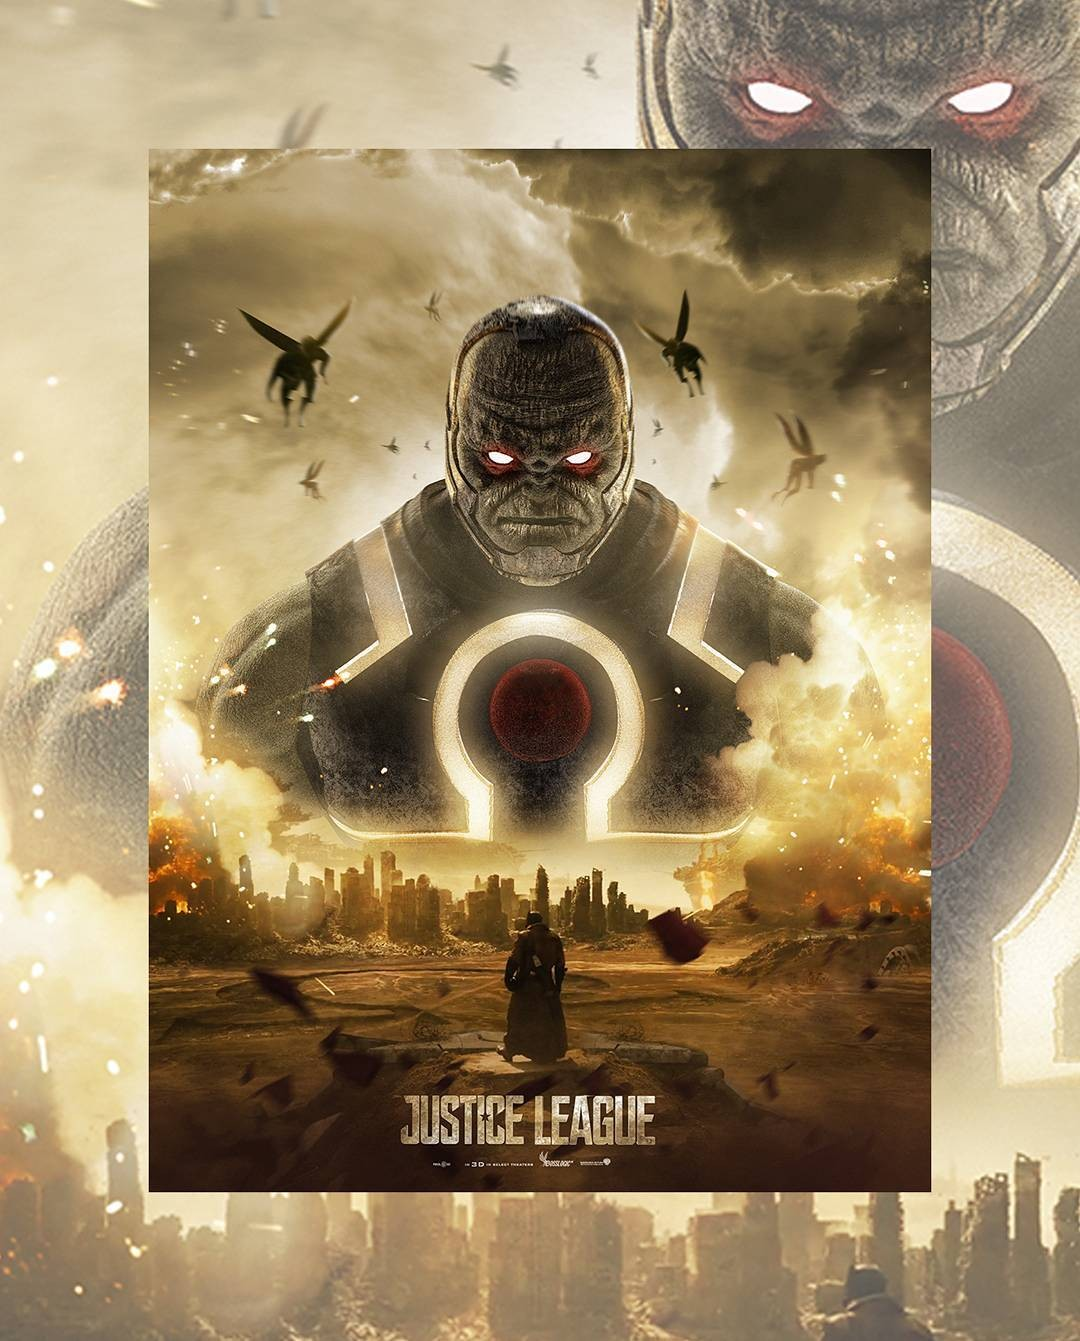 It's Superman Vs. Darkseid On This Epic Fan-Made Justice League Poster